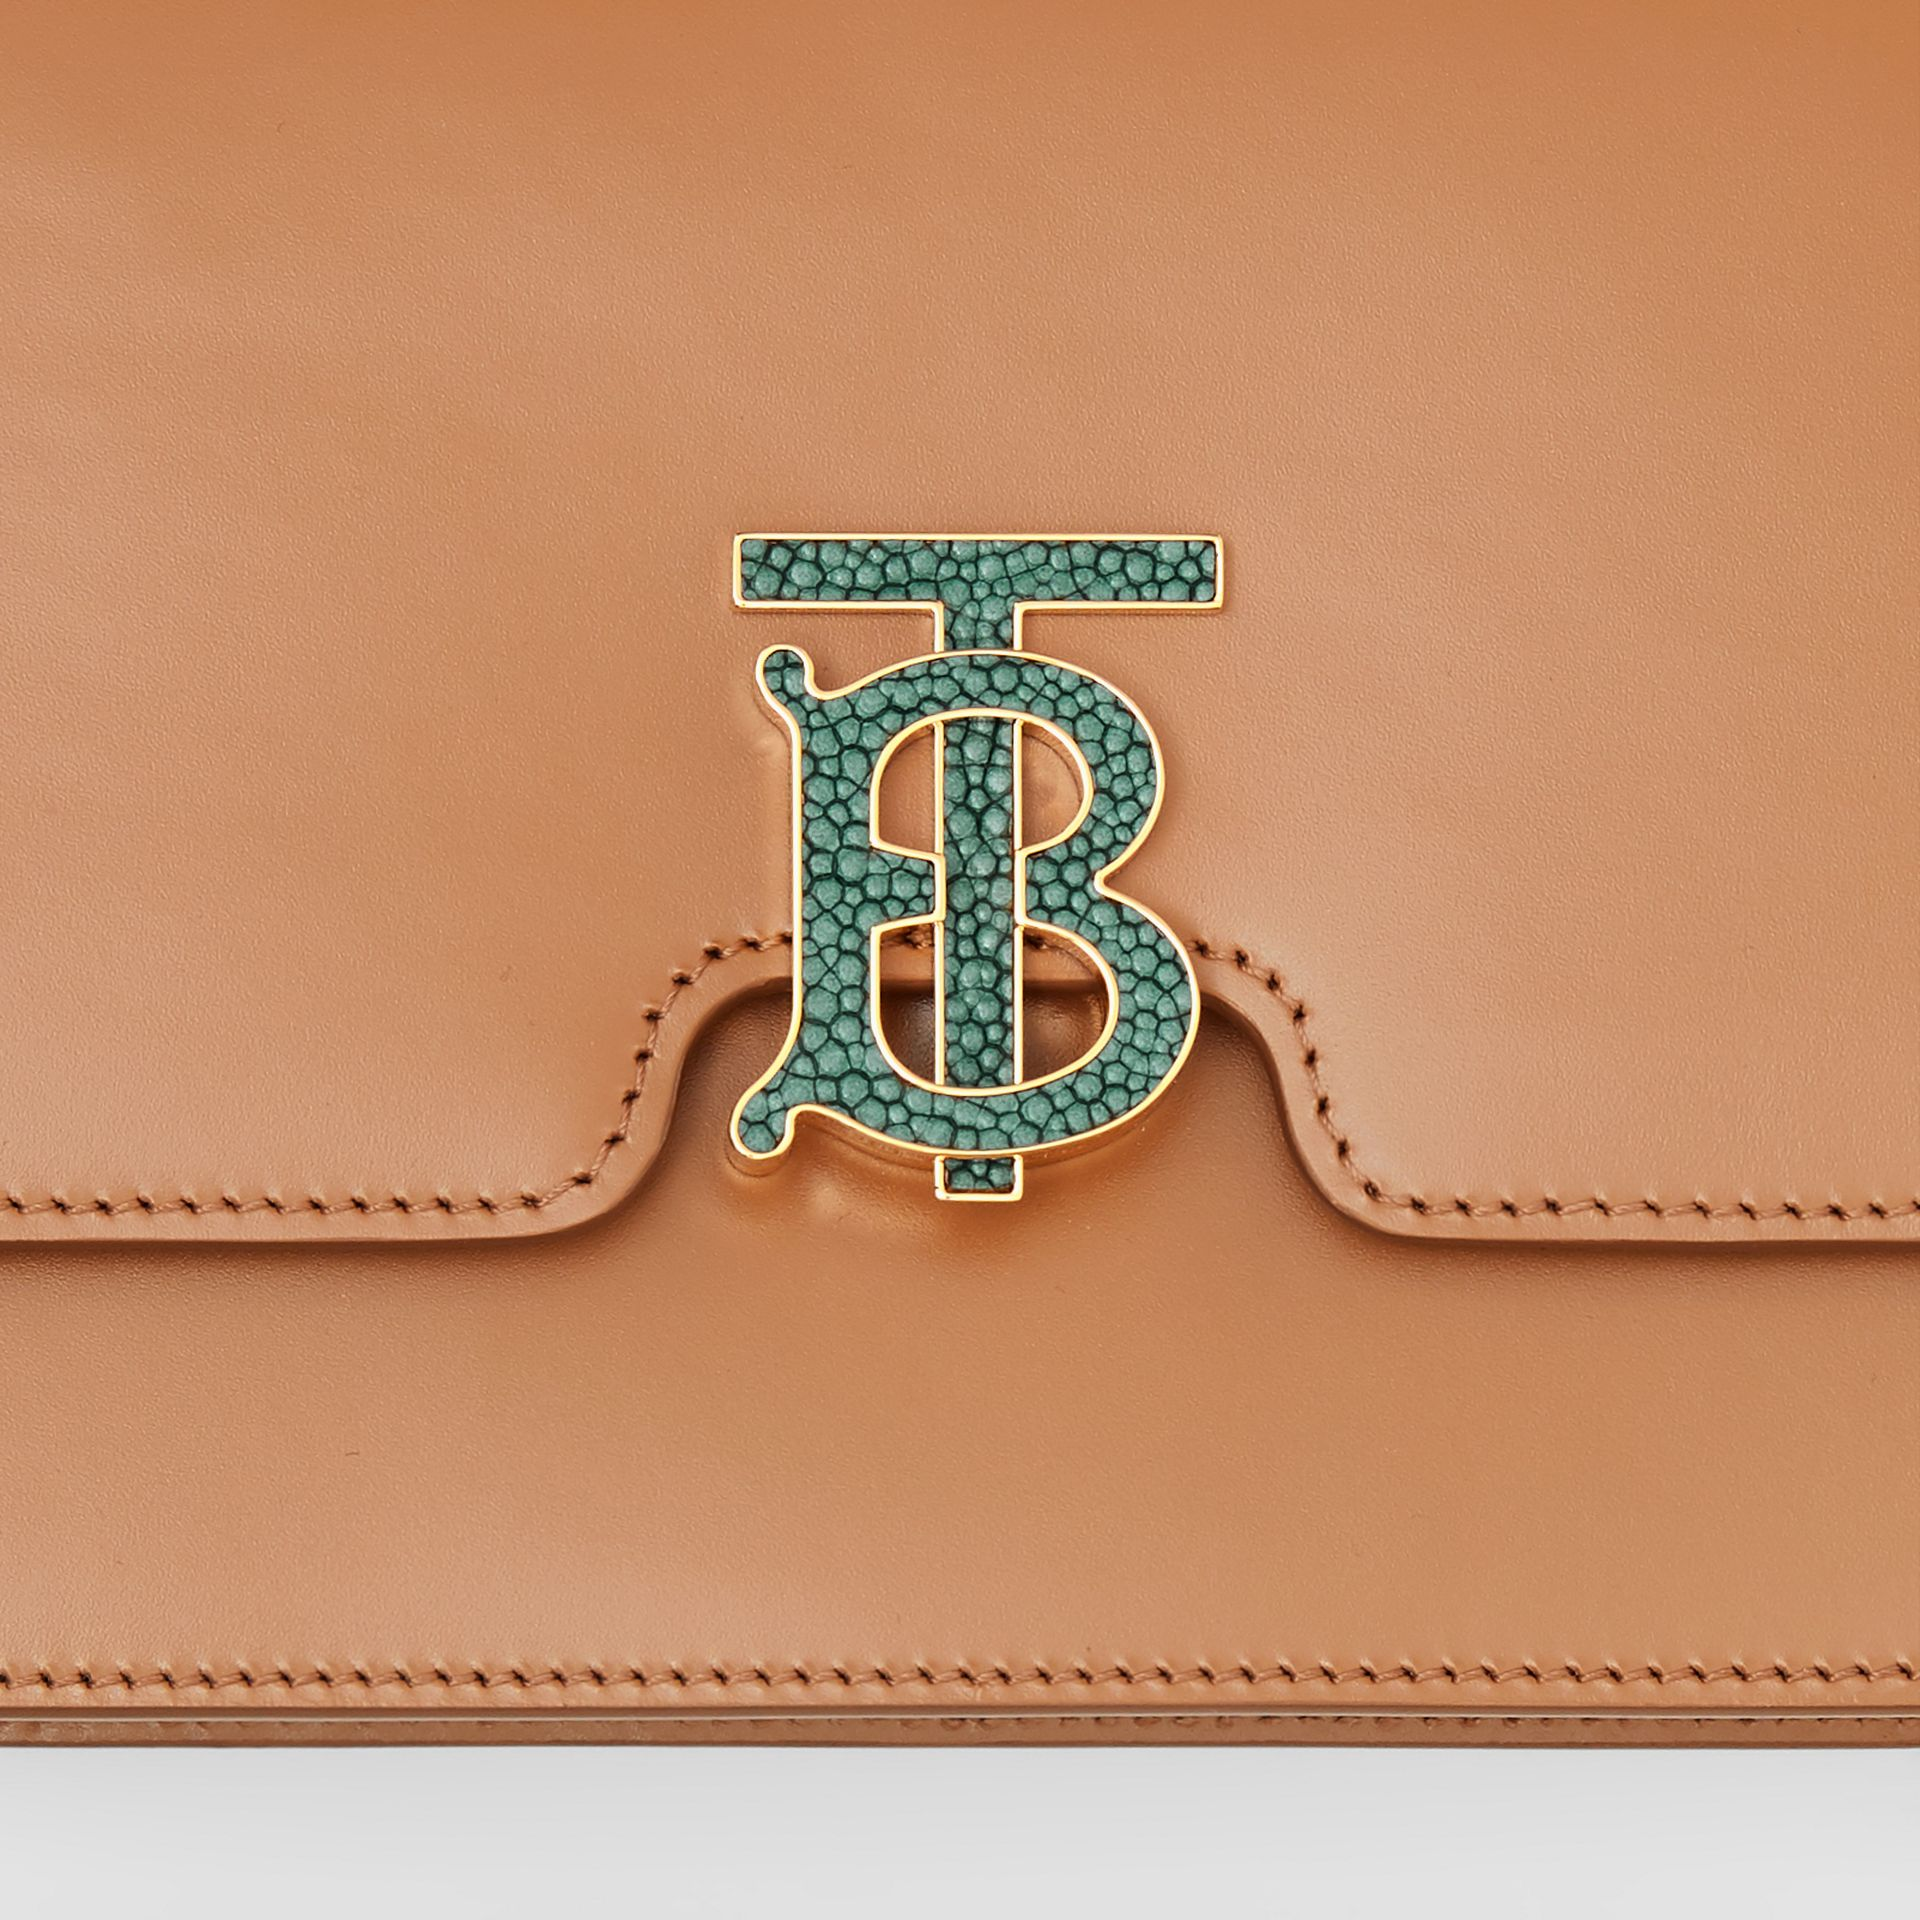 Medium Leather TB Bag in Flaxseed - Women | Burberry - gallery image 1